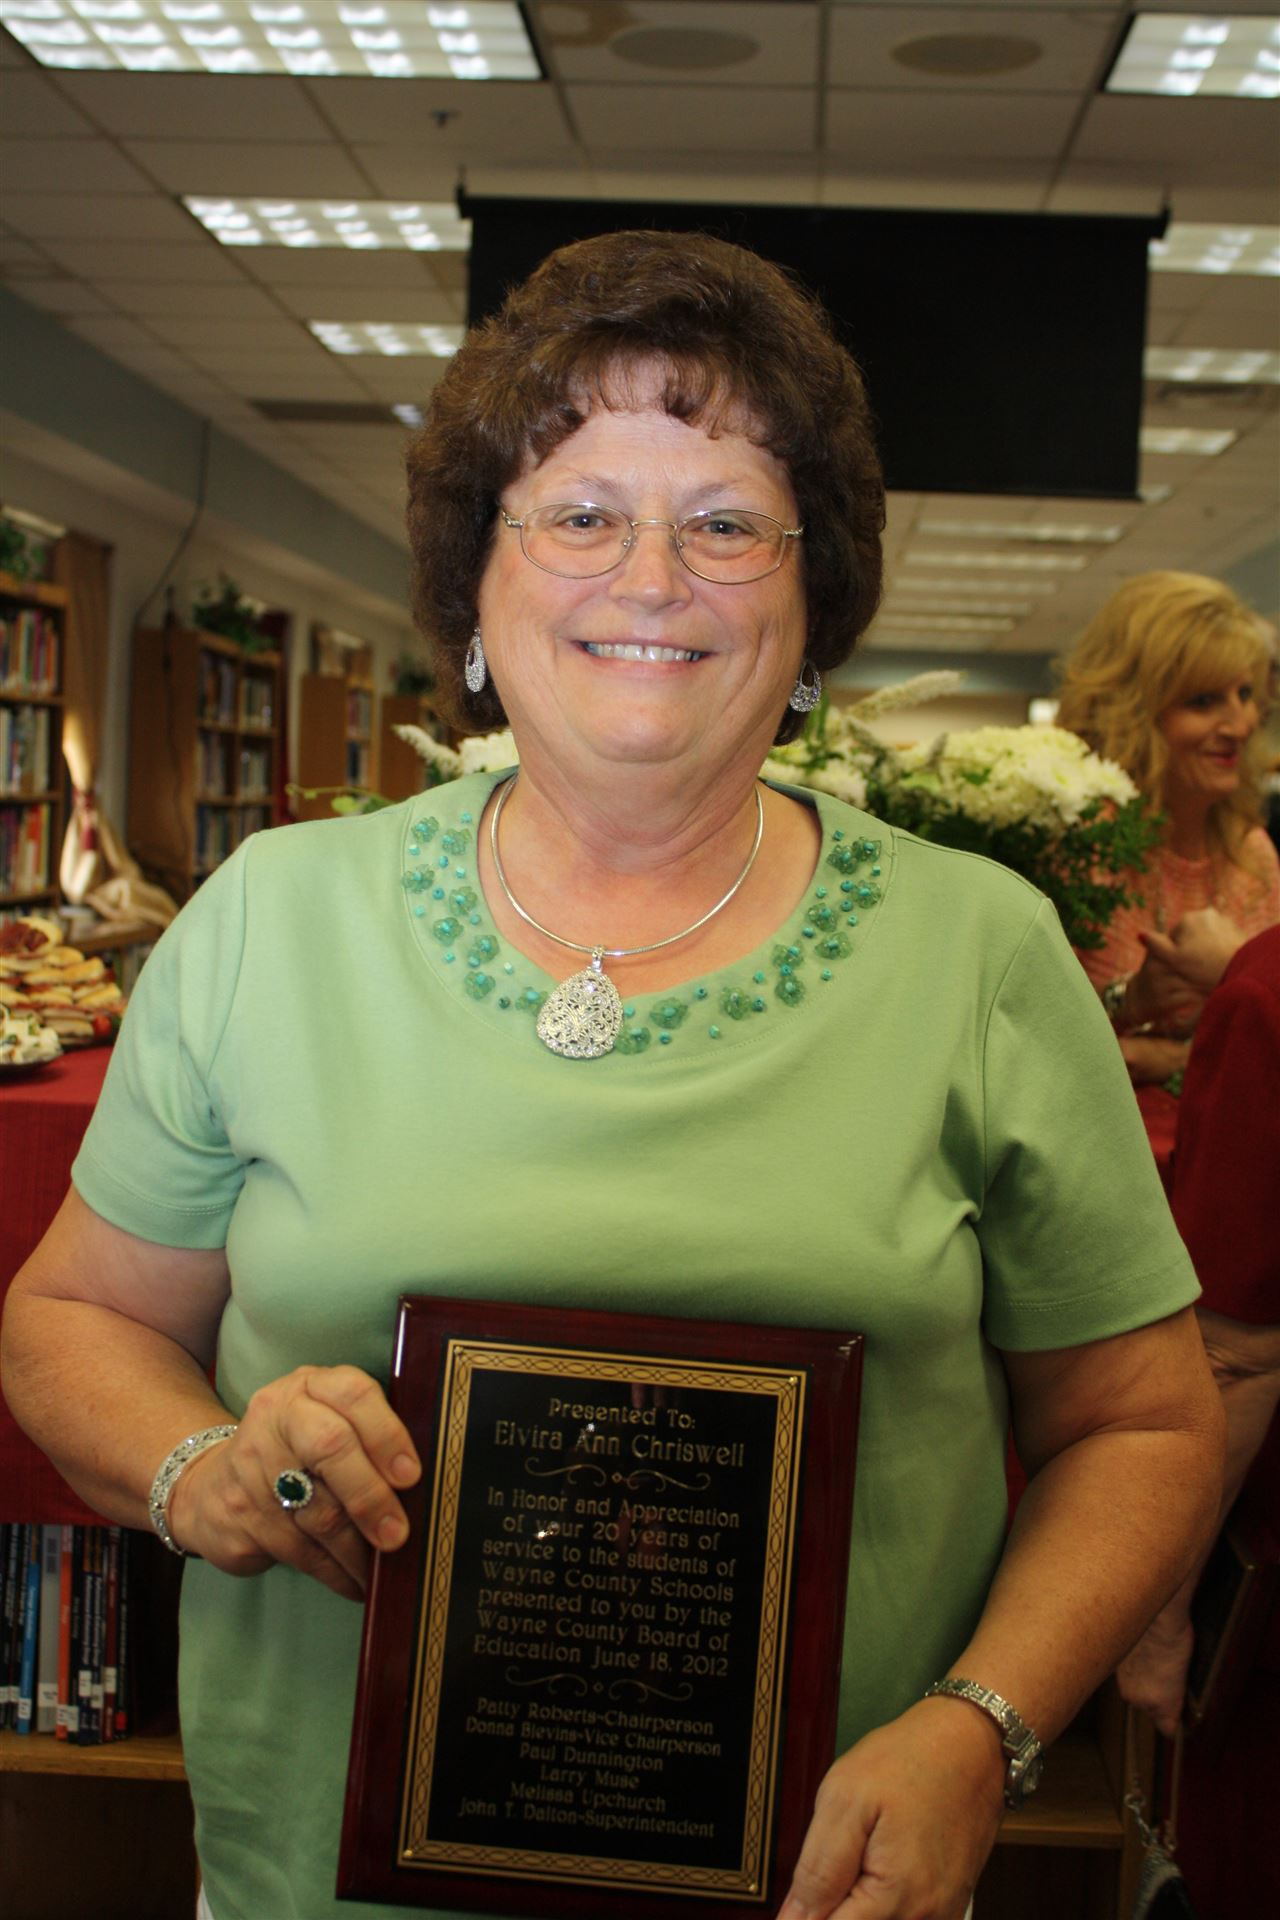 21 Wayne County School Employees Retire - Wayne County ...